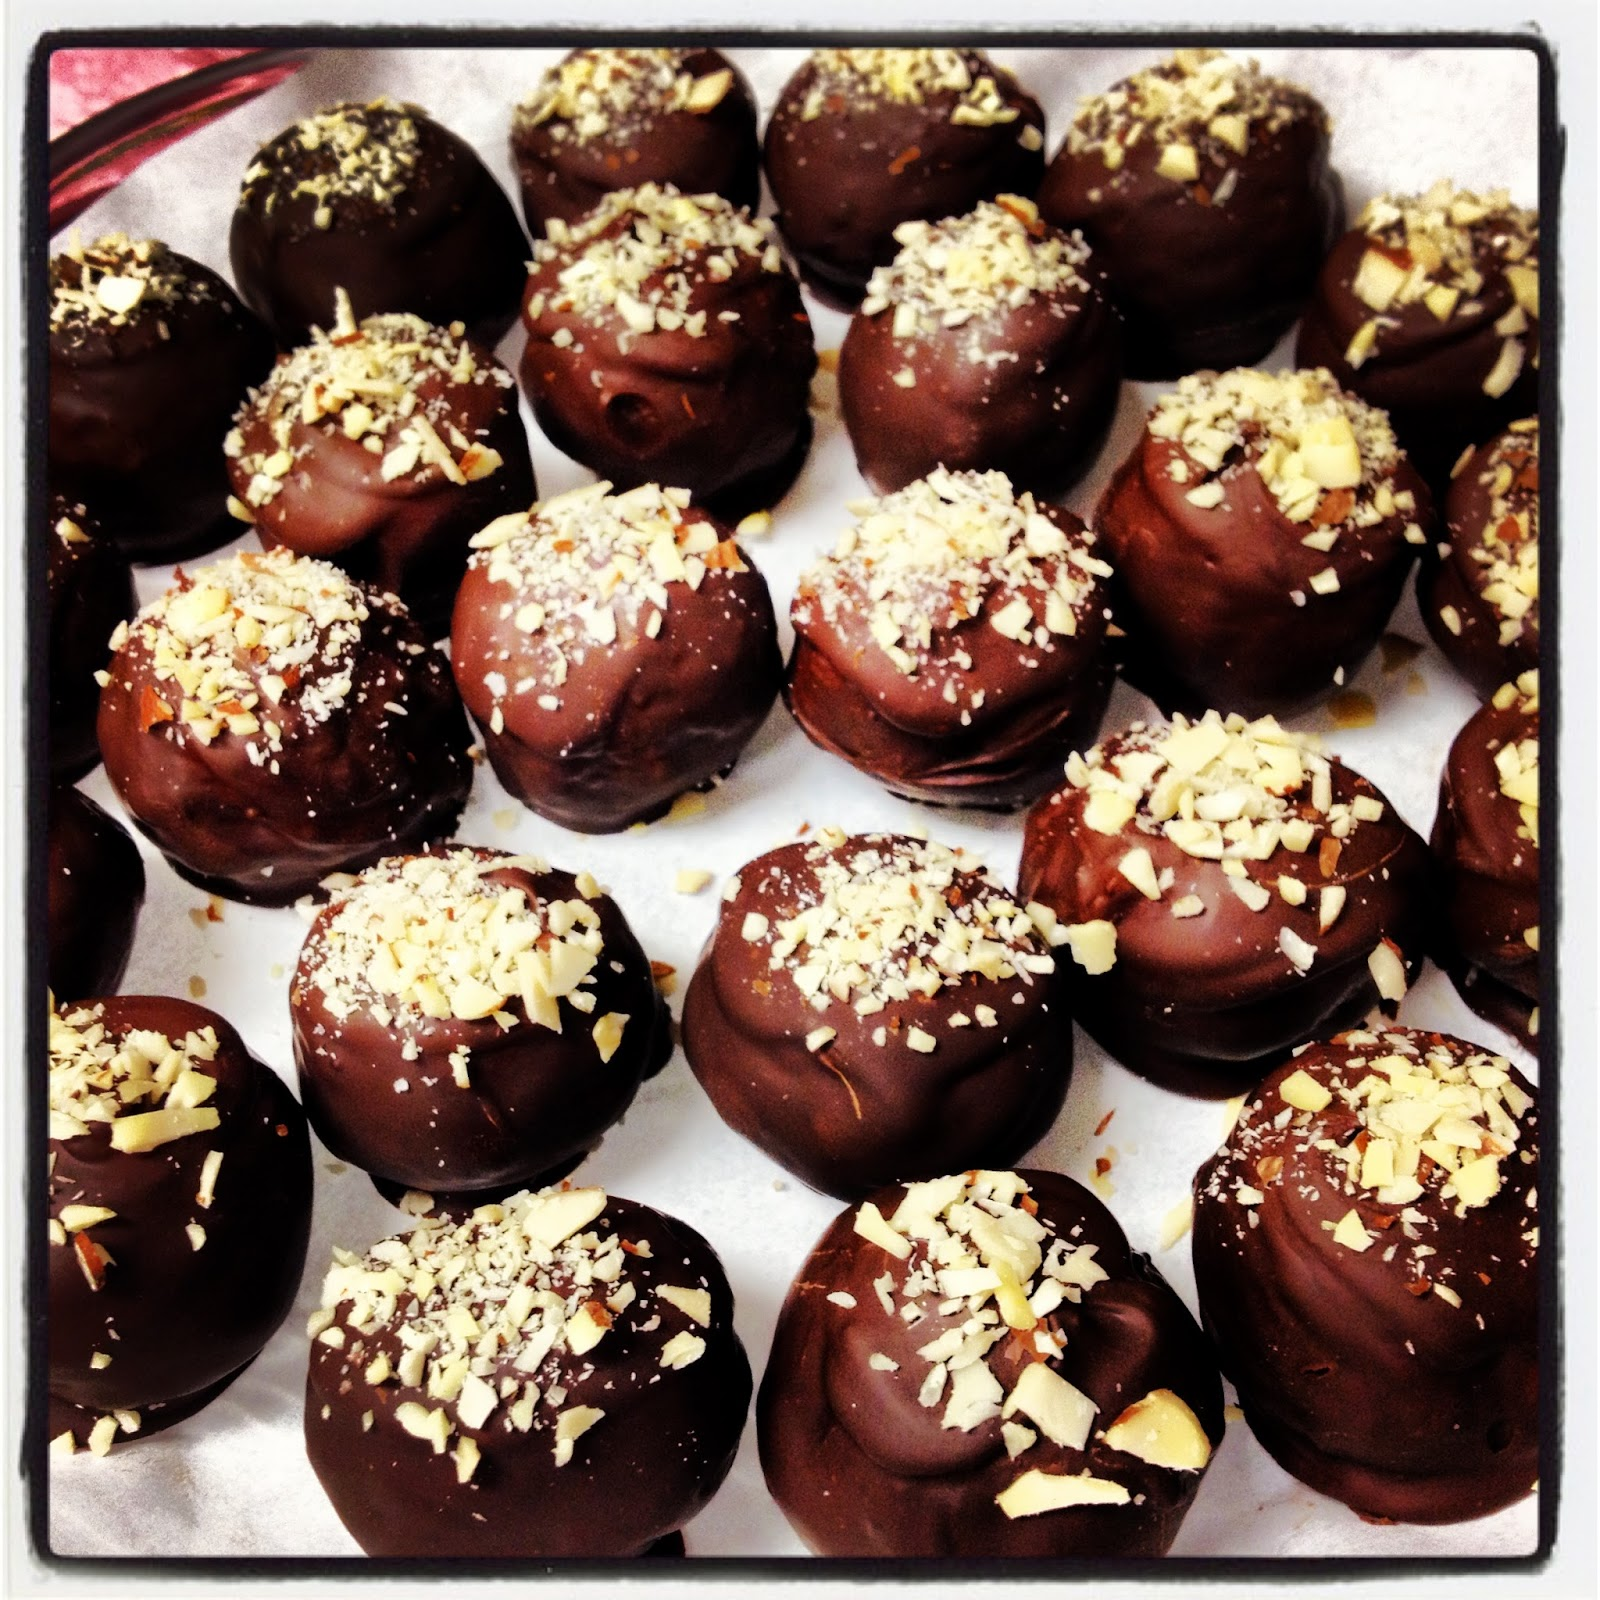 ... Chocolate Dipped Almond Truffles. They tasted like a cross between